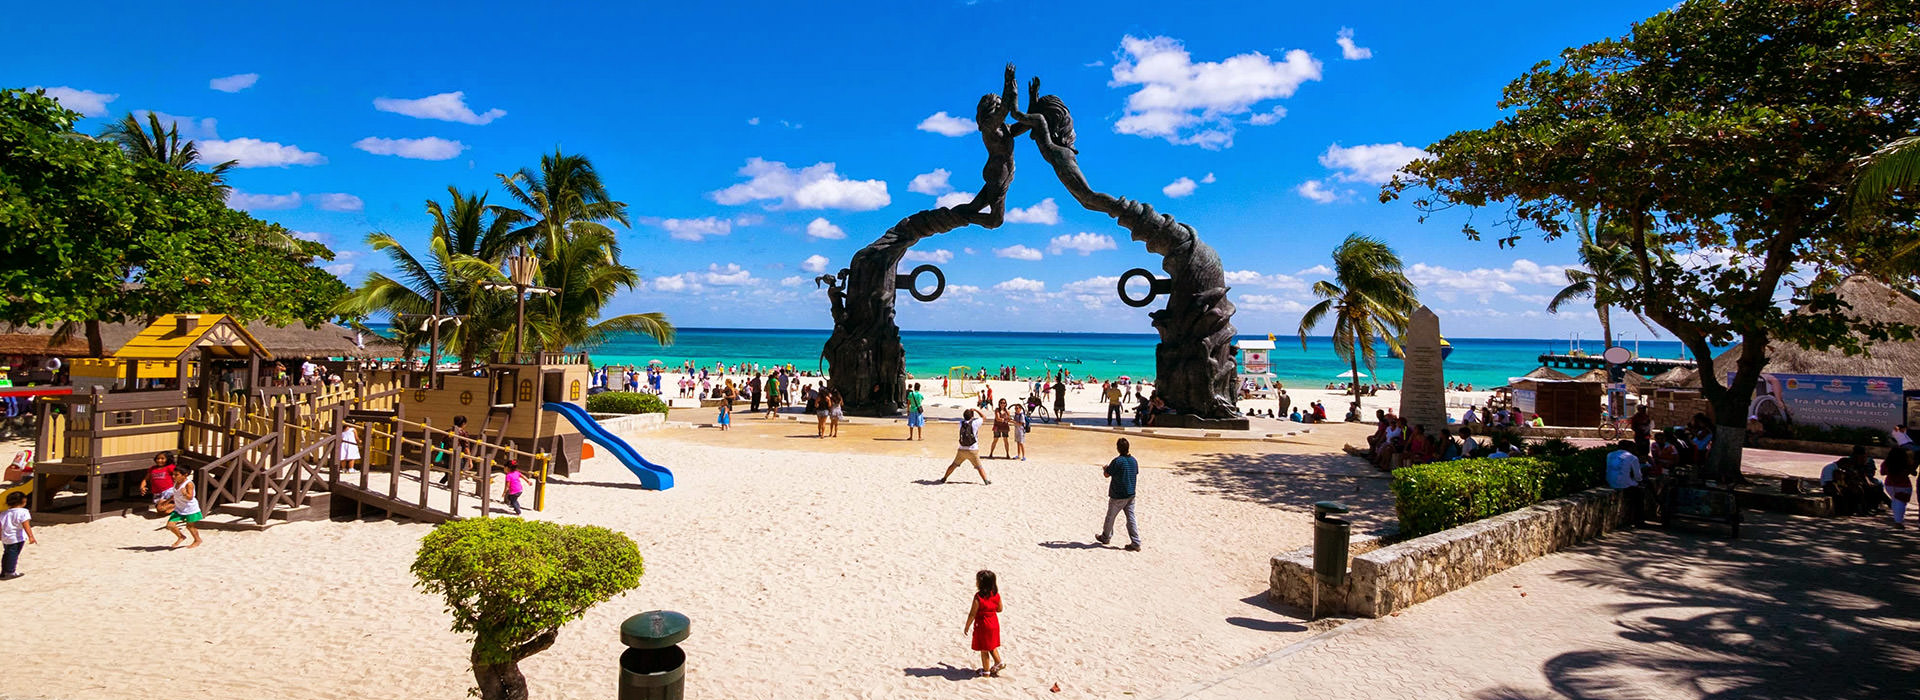 CANADIAN GOVERNMENT ISSUES WARNING ABOUT PLAYA DEL CARMEN, MEXICO